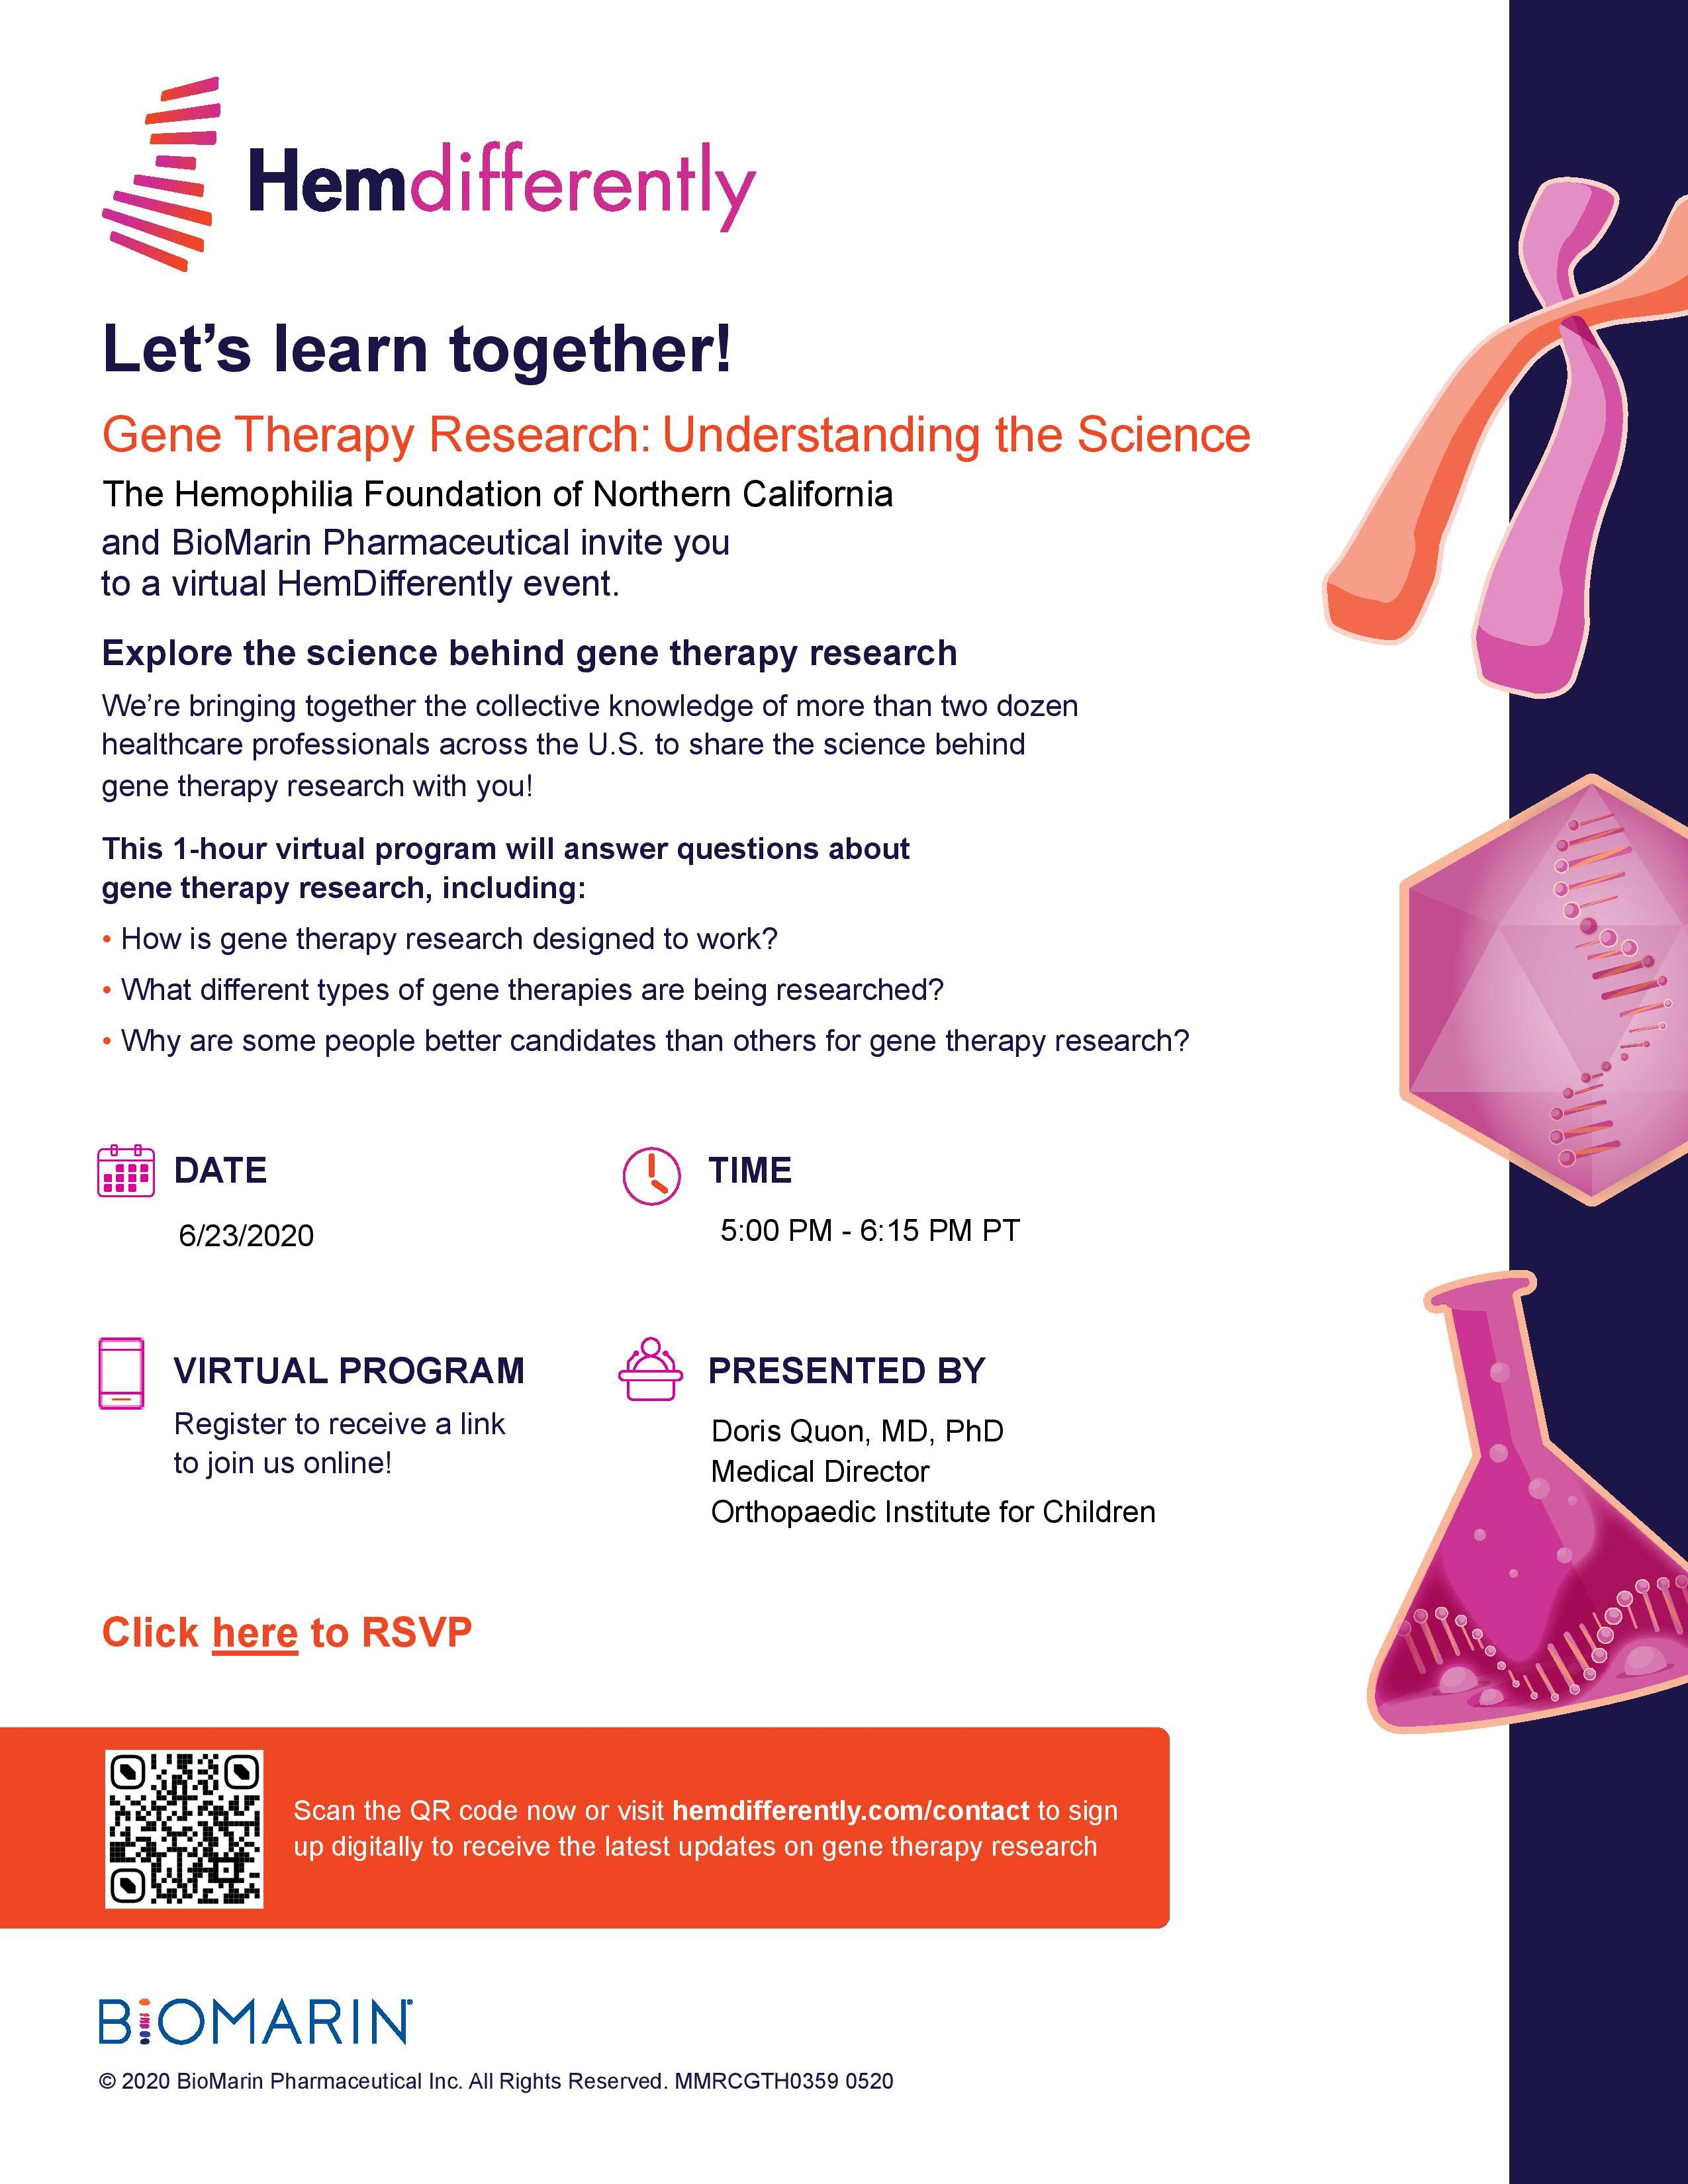 Webinar: Gene Therapy Research - Understanding the Science